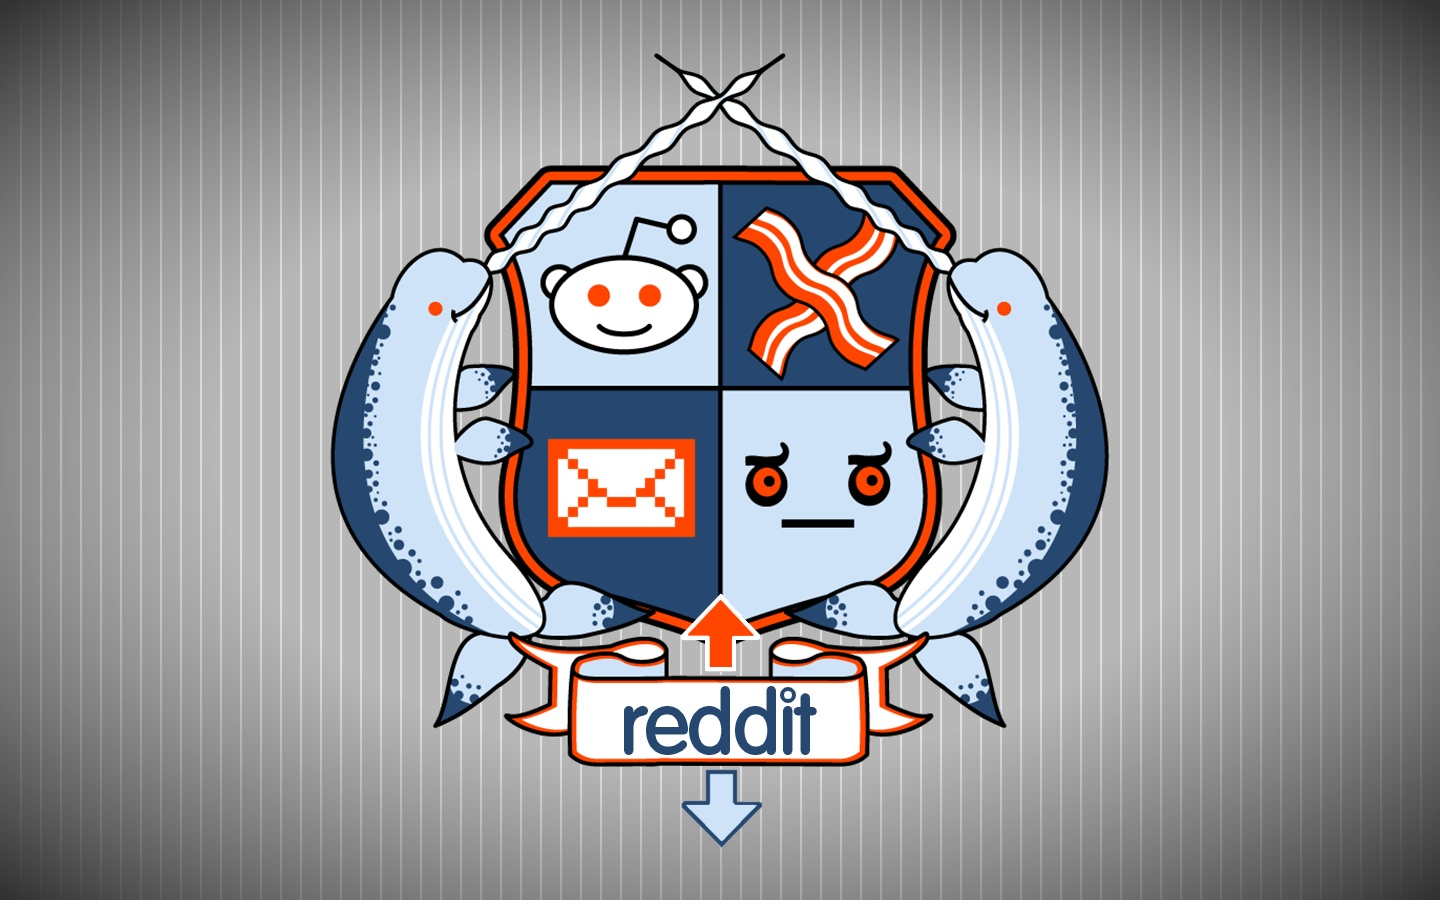 Wallpaper Reddit